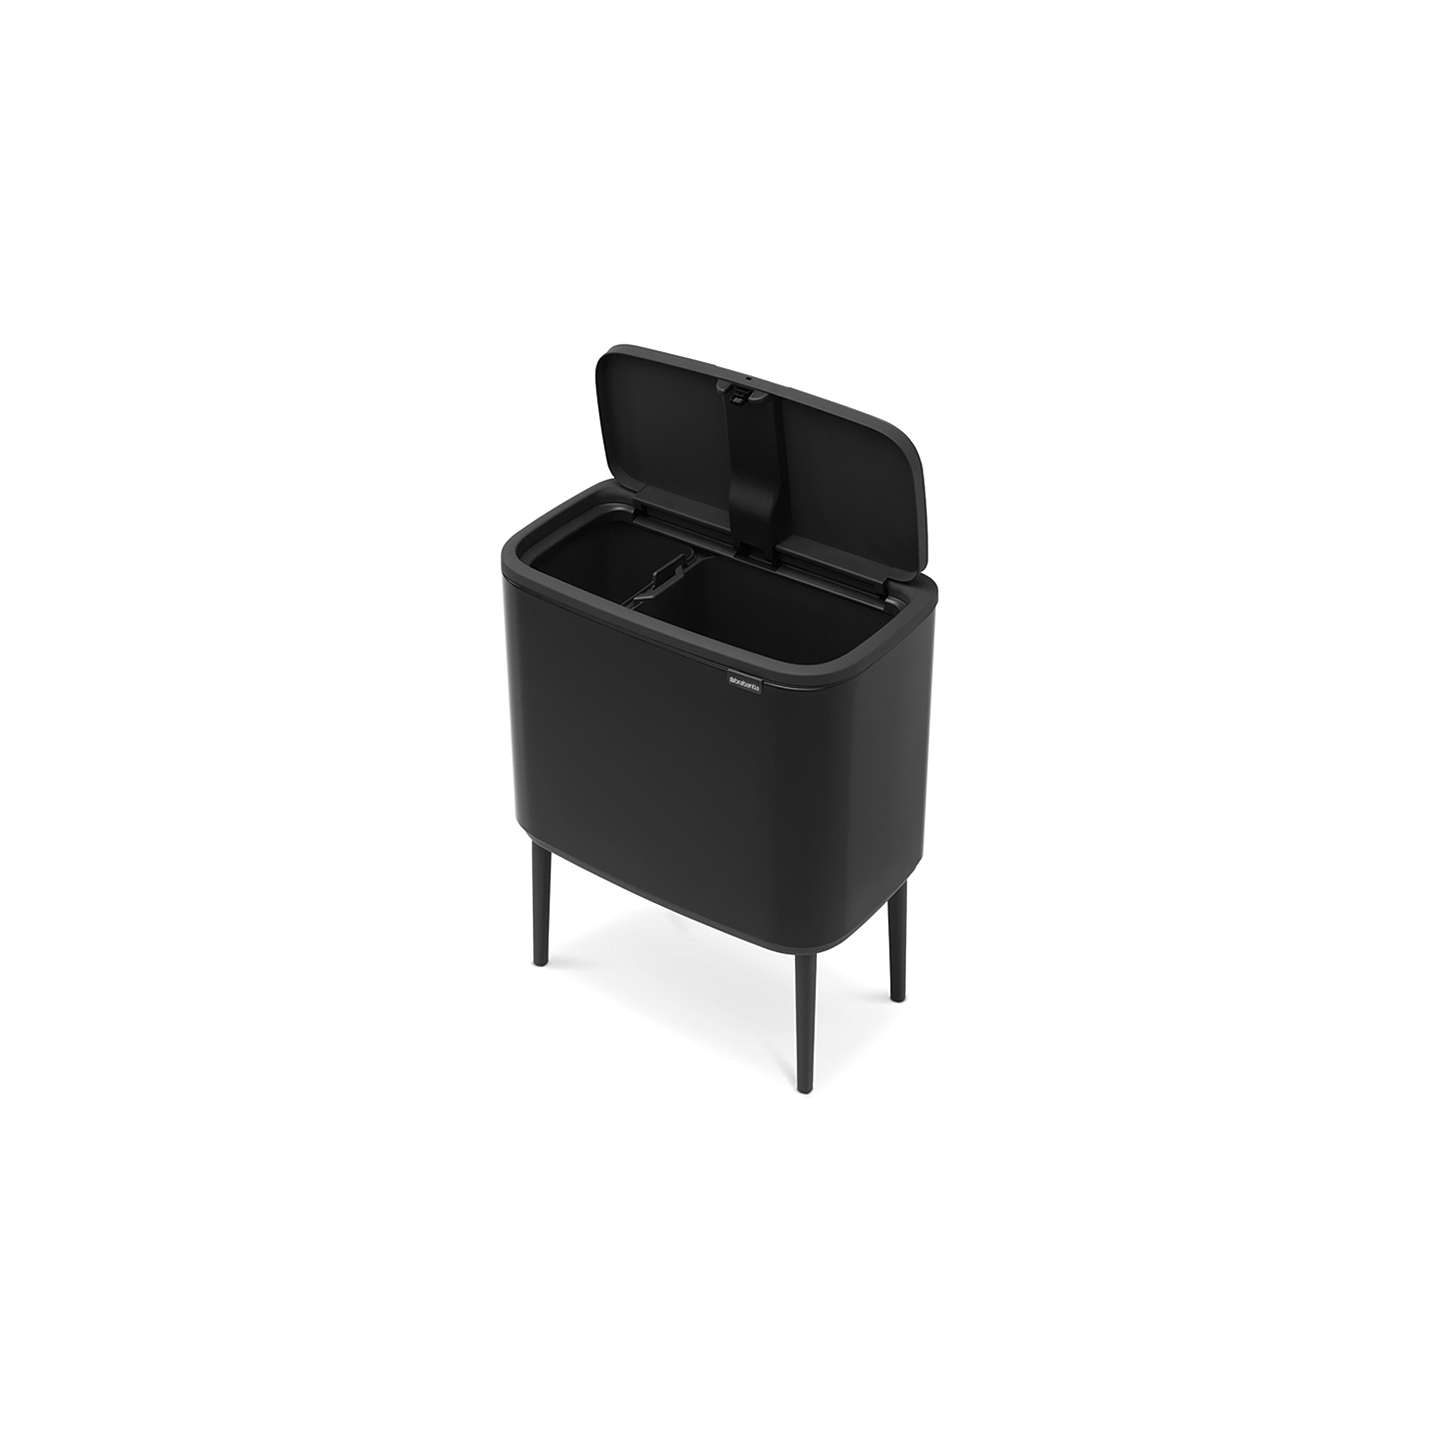 BuyBrabantia Bo Touch Bin, 11L & 23L, Black Online at johnlewis.com